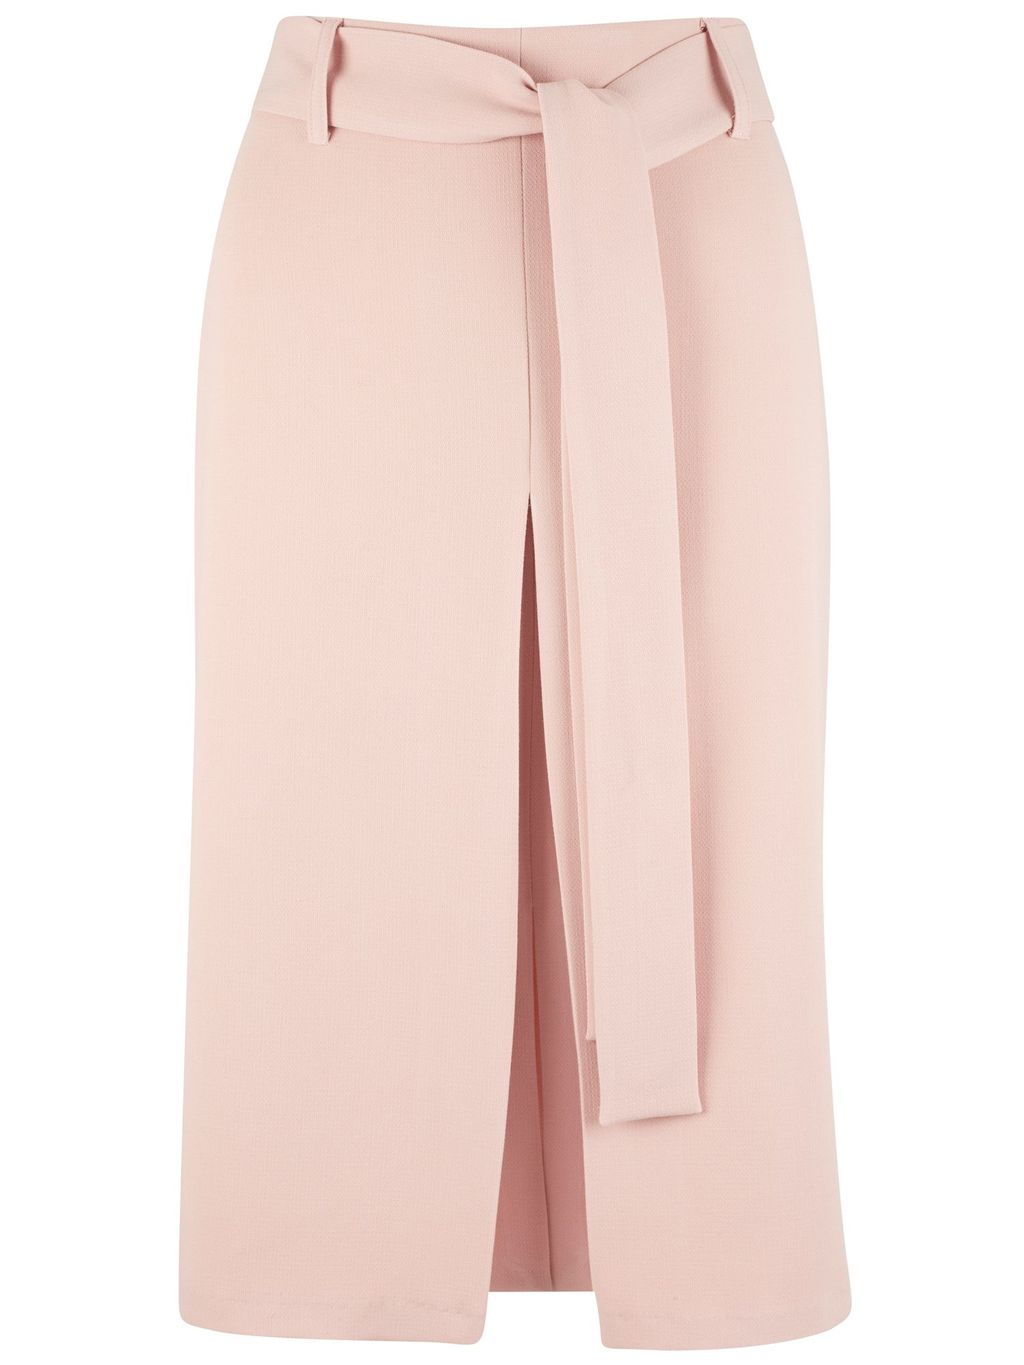 Self Tie Belt Vent Pencil Skirt, Pastel Pink - pattern: plain; style: pencil; waist: high rise; waist detail: belted waist/tie at waist/drawstring; predominant colour: blush; occasions: evening, creative work; length: just above the knee; fibres: polyester/polyamide - stretch; fit: straight cut; pattern type: fabric; texture group: woven light midweight; season: s/s 2016; wardrobe: basic